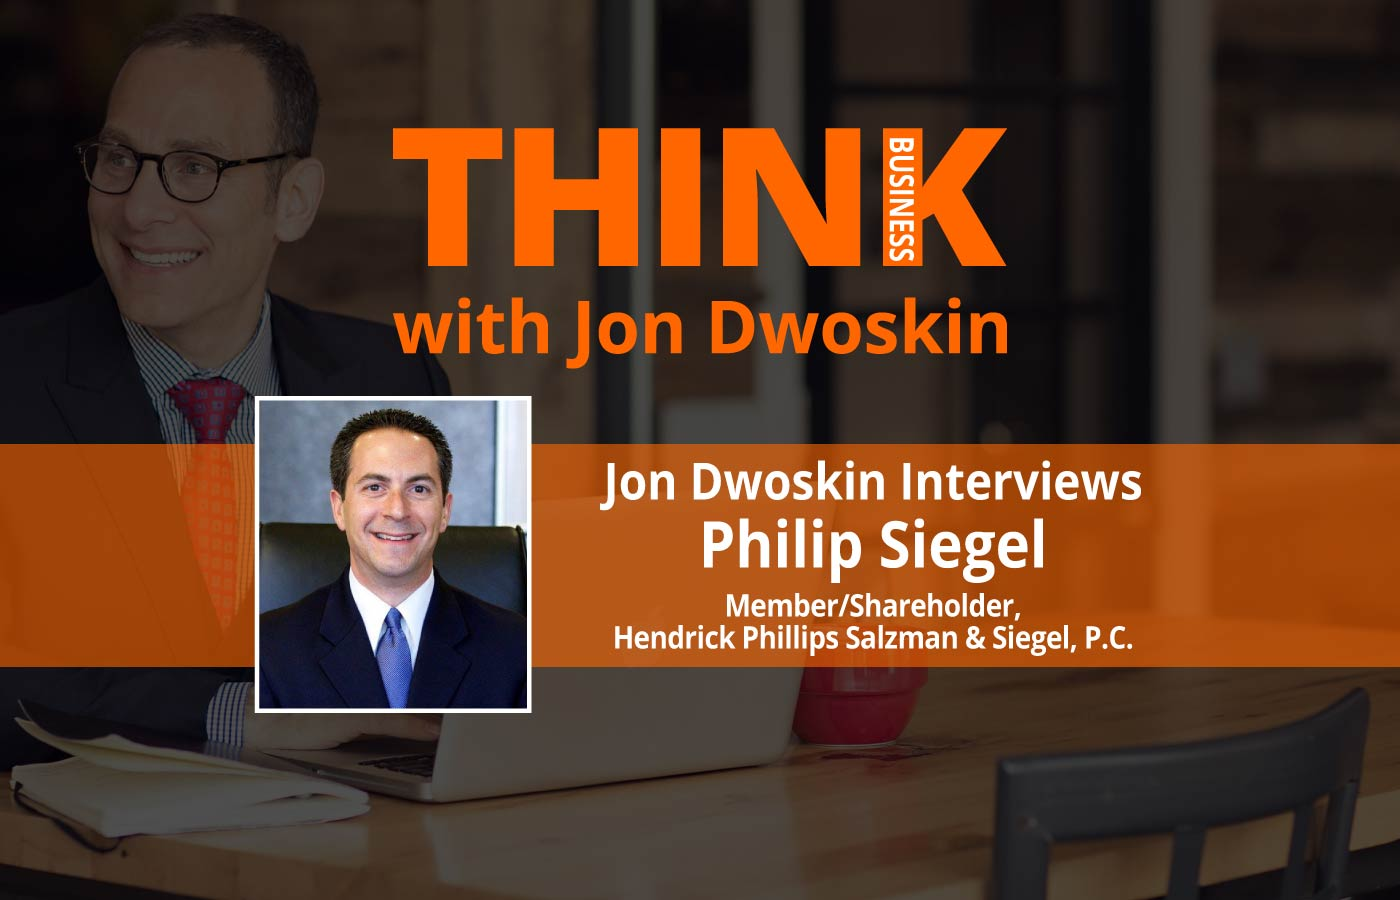 THINK Business Podcast: Jon Dwoskin Interviews Philip Siegel